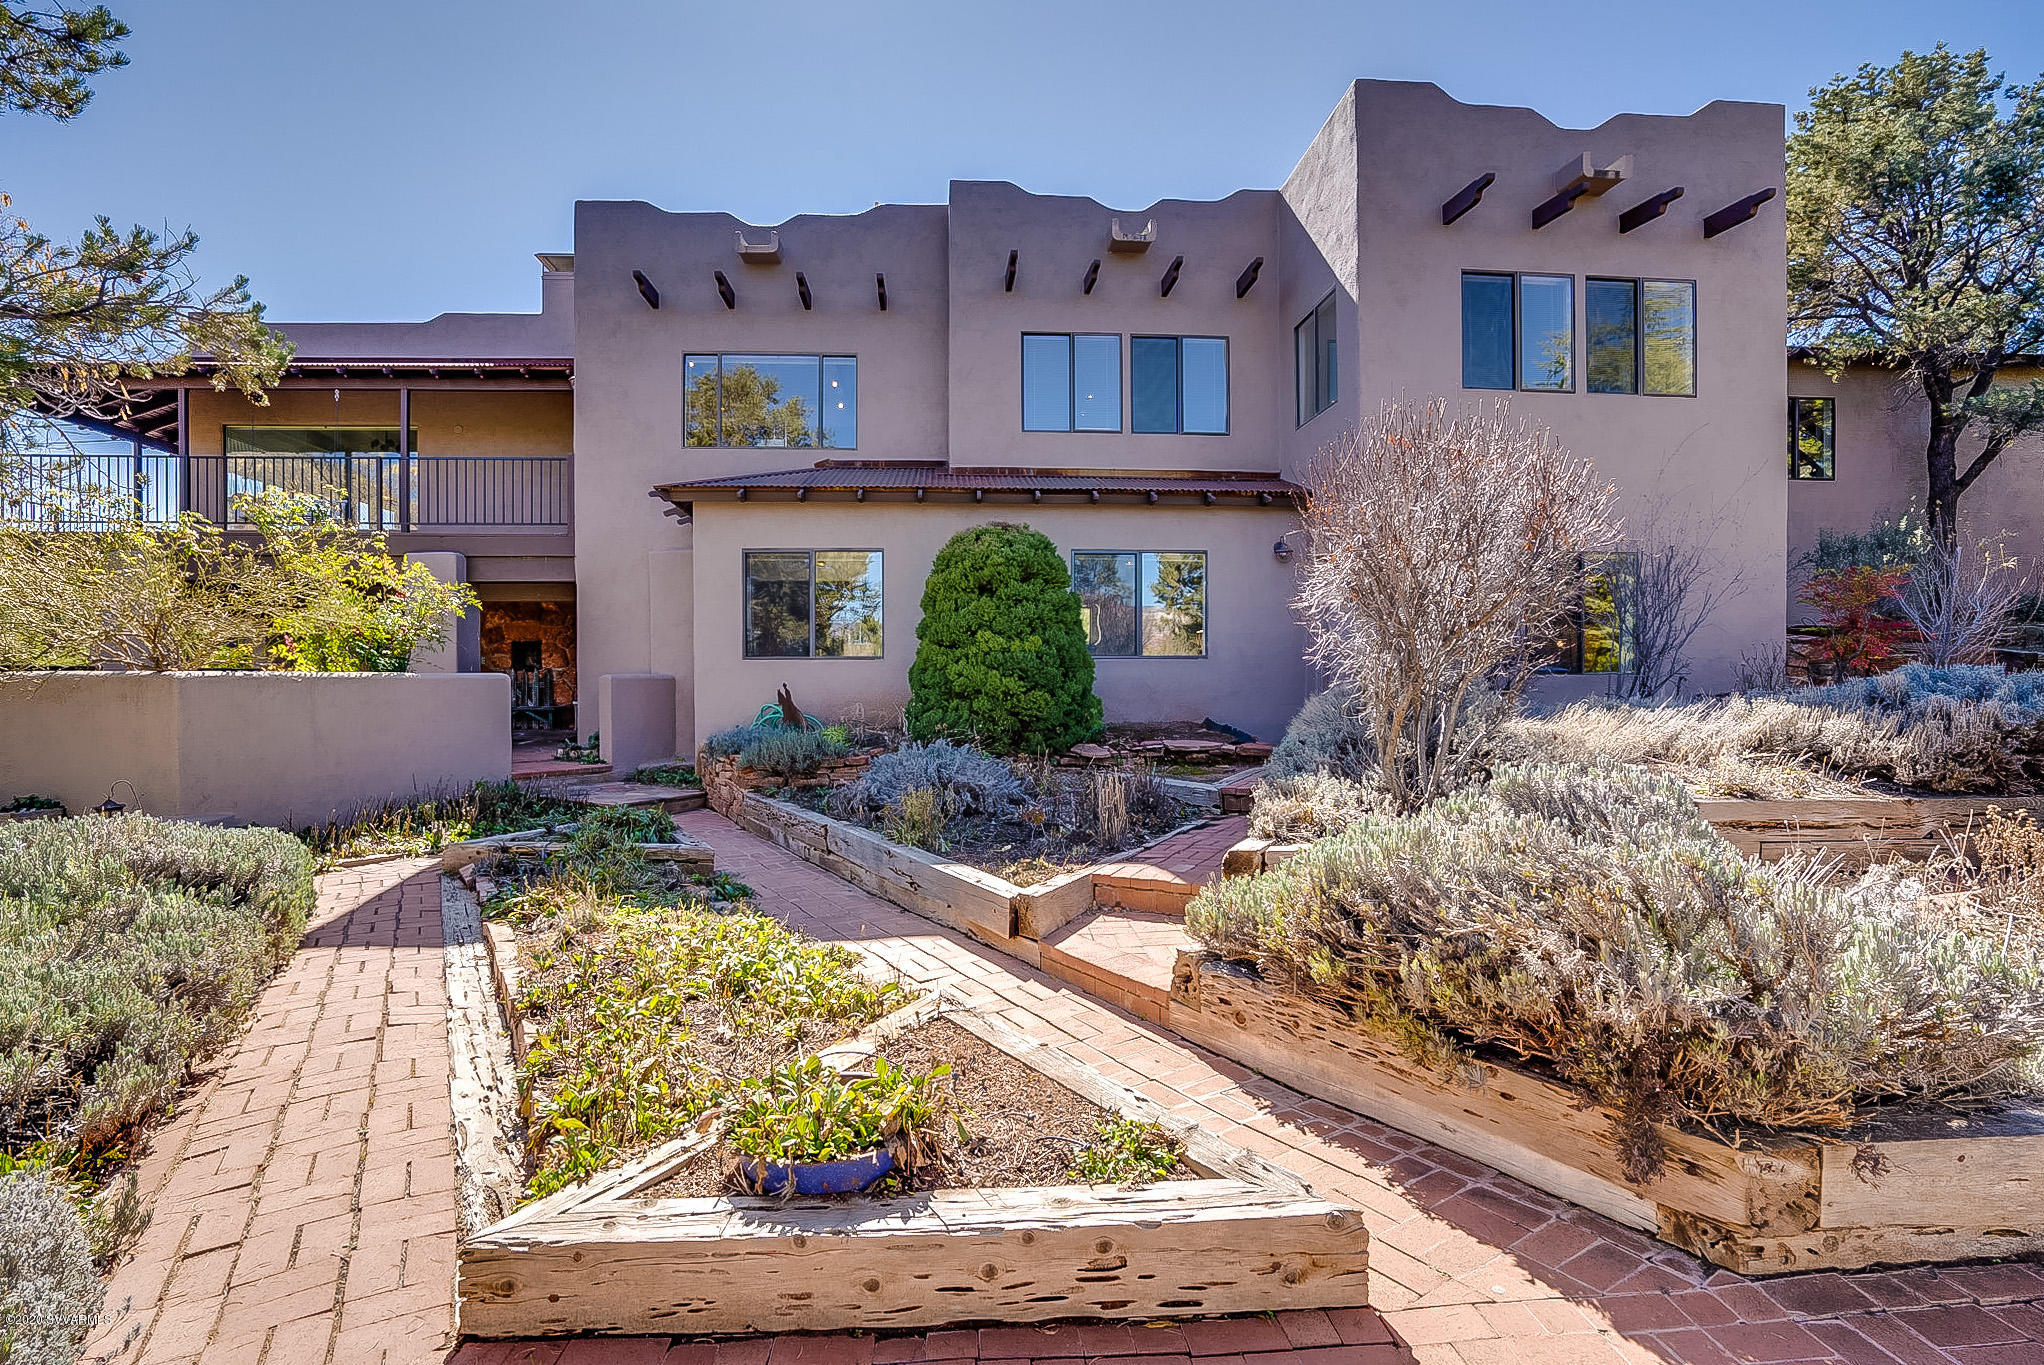 95 Color Cove Rd Sedona, AZ 86336